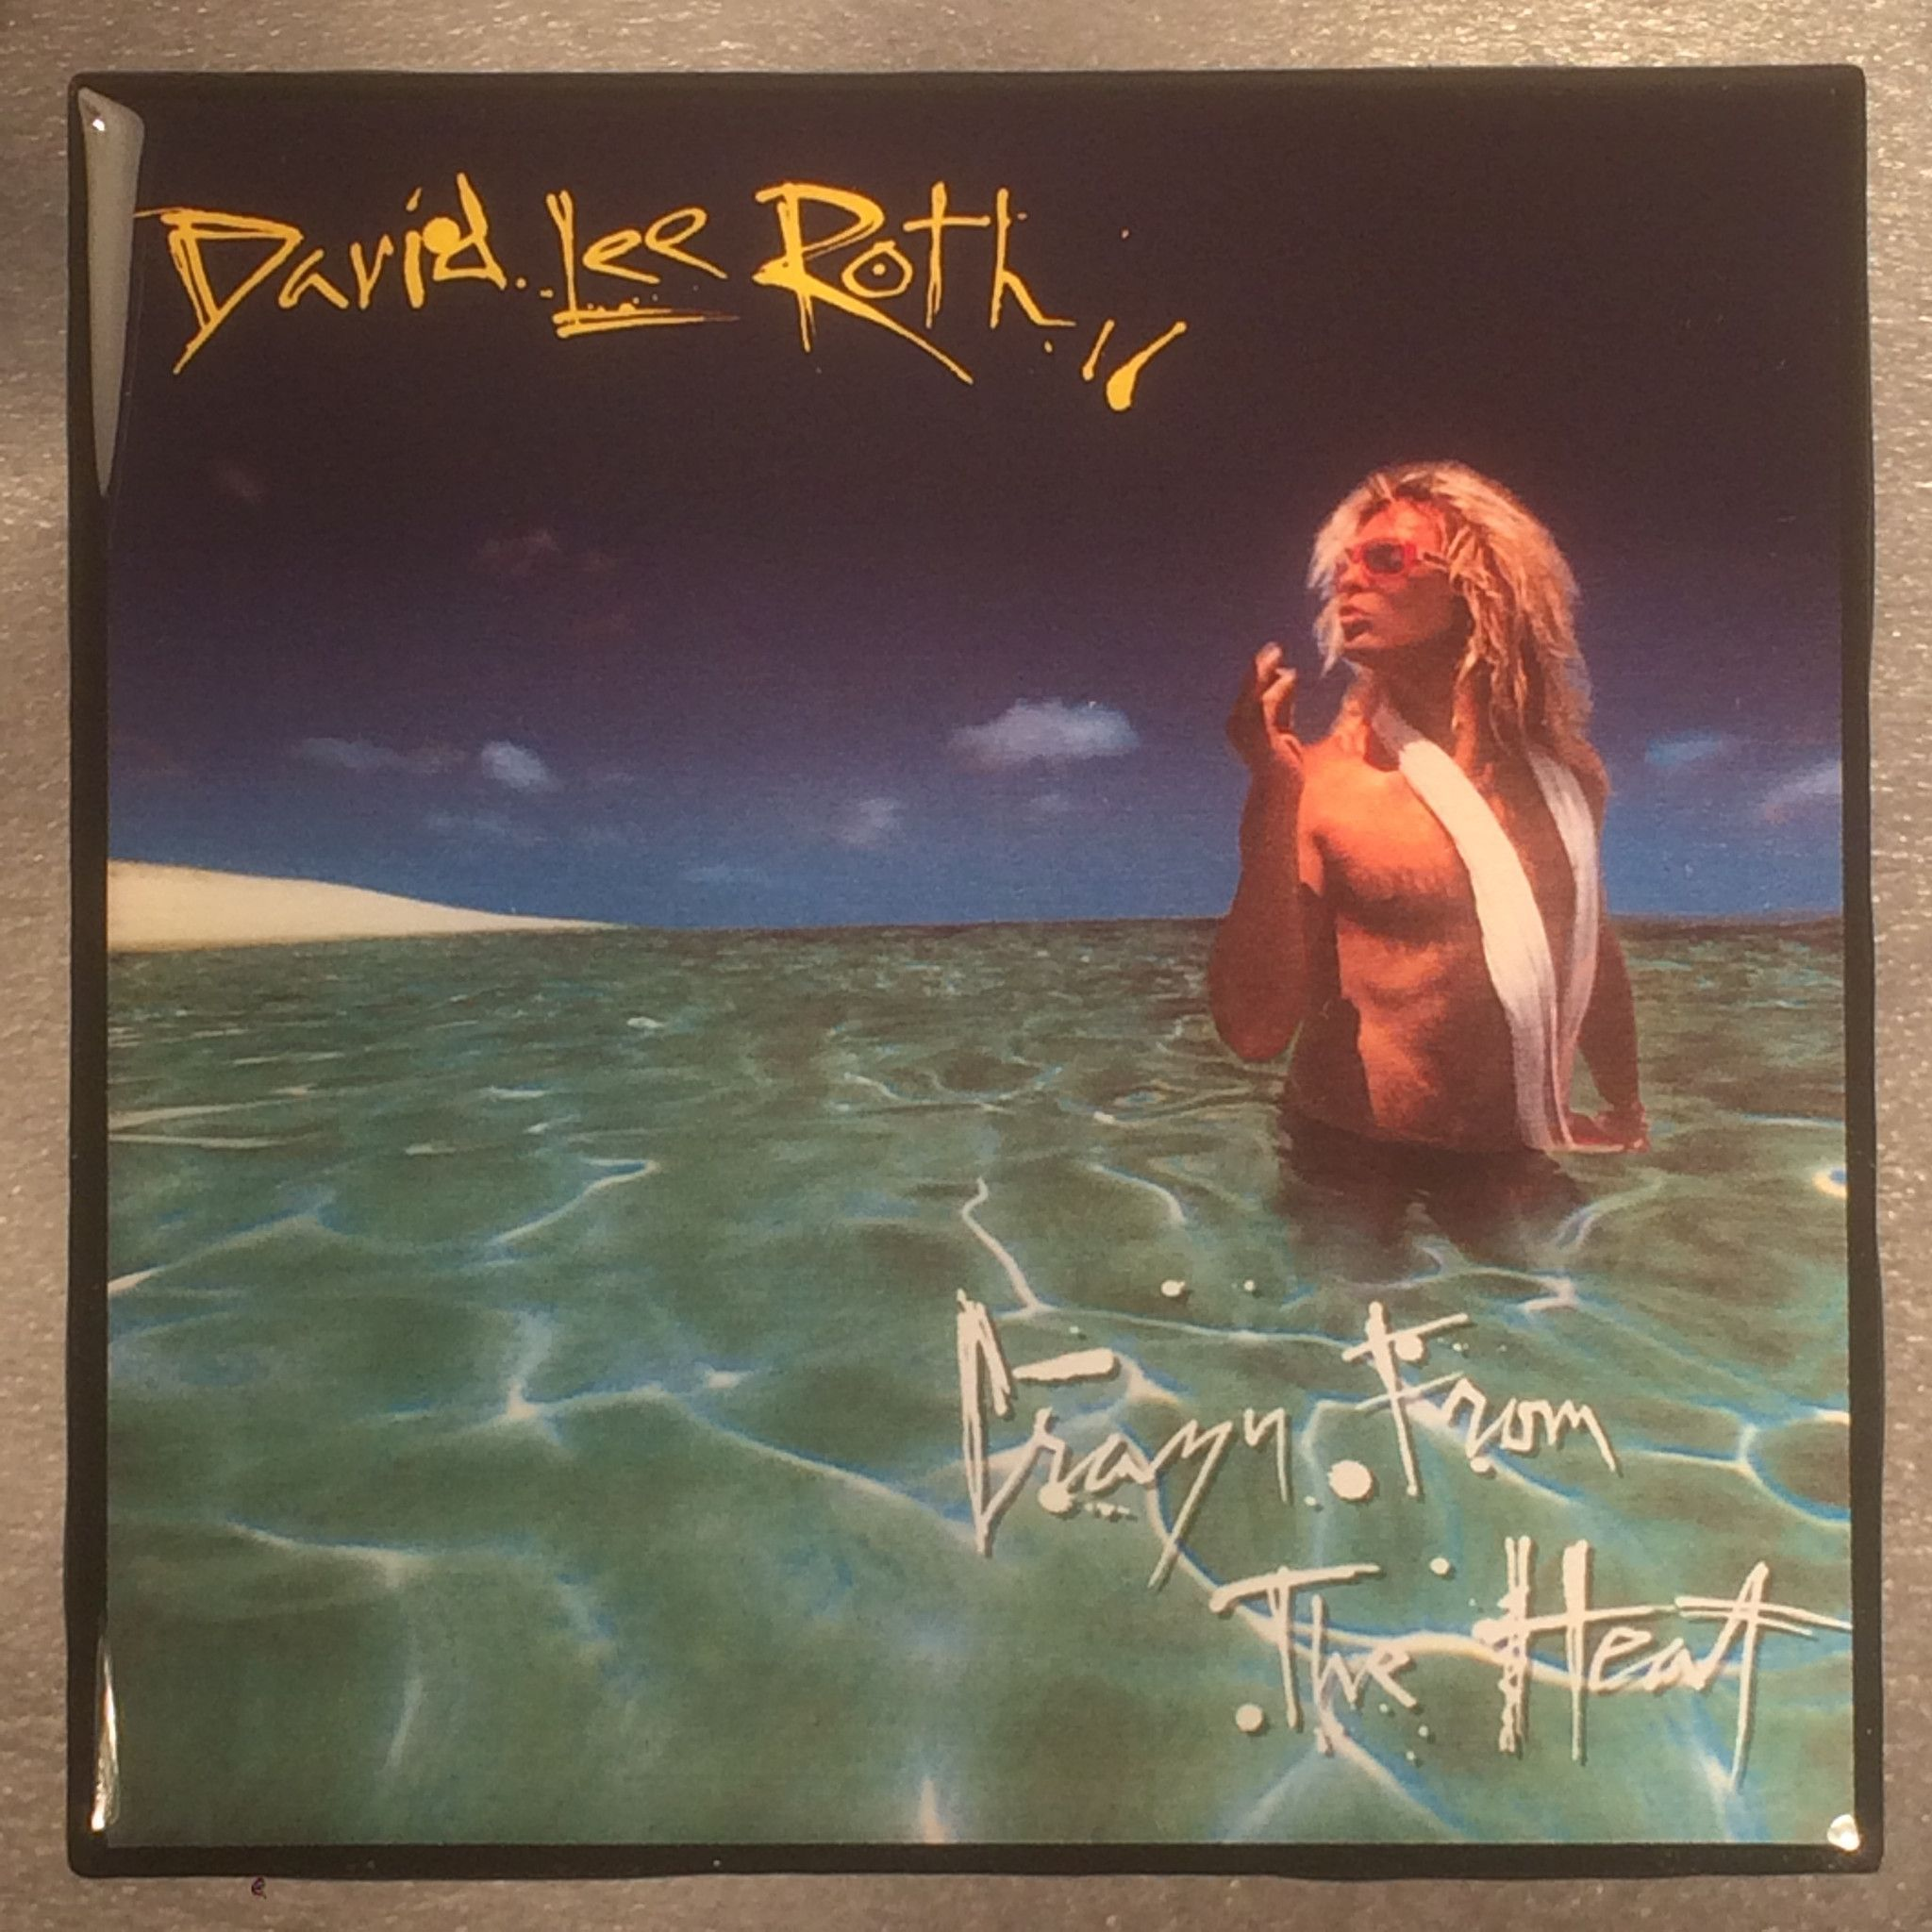 David Lee Roth Crazy From The Heat Record Cover Art Ceramic Tile Coaster Ceramic Tile Coaster Cover Art Tile Coasters